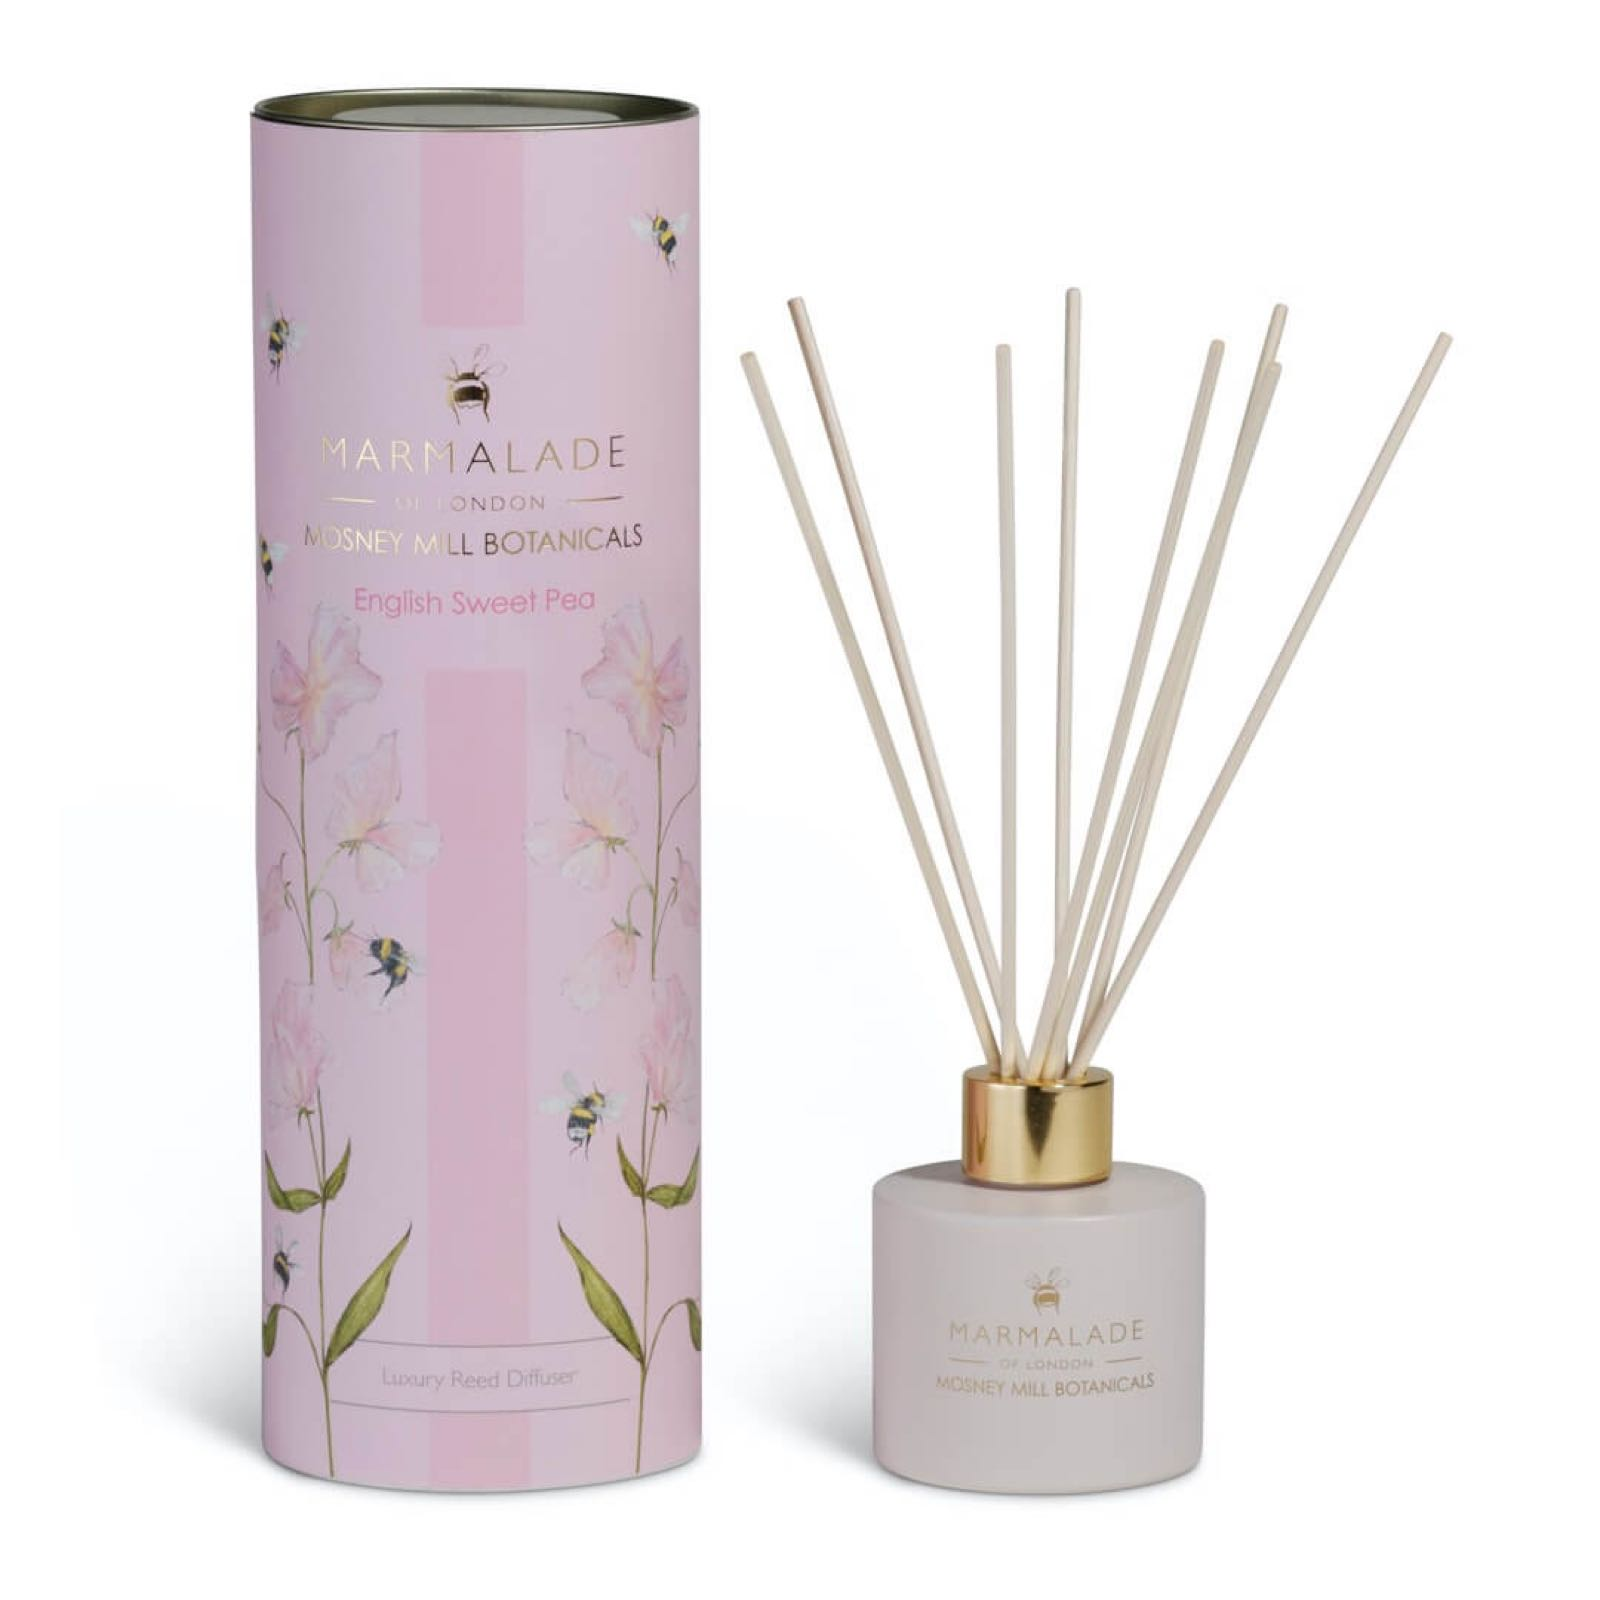 Mosney Mill English Sweet Pea Diffuser